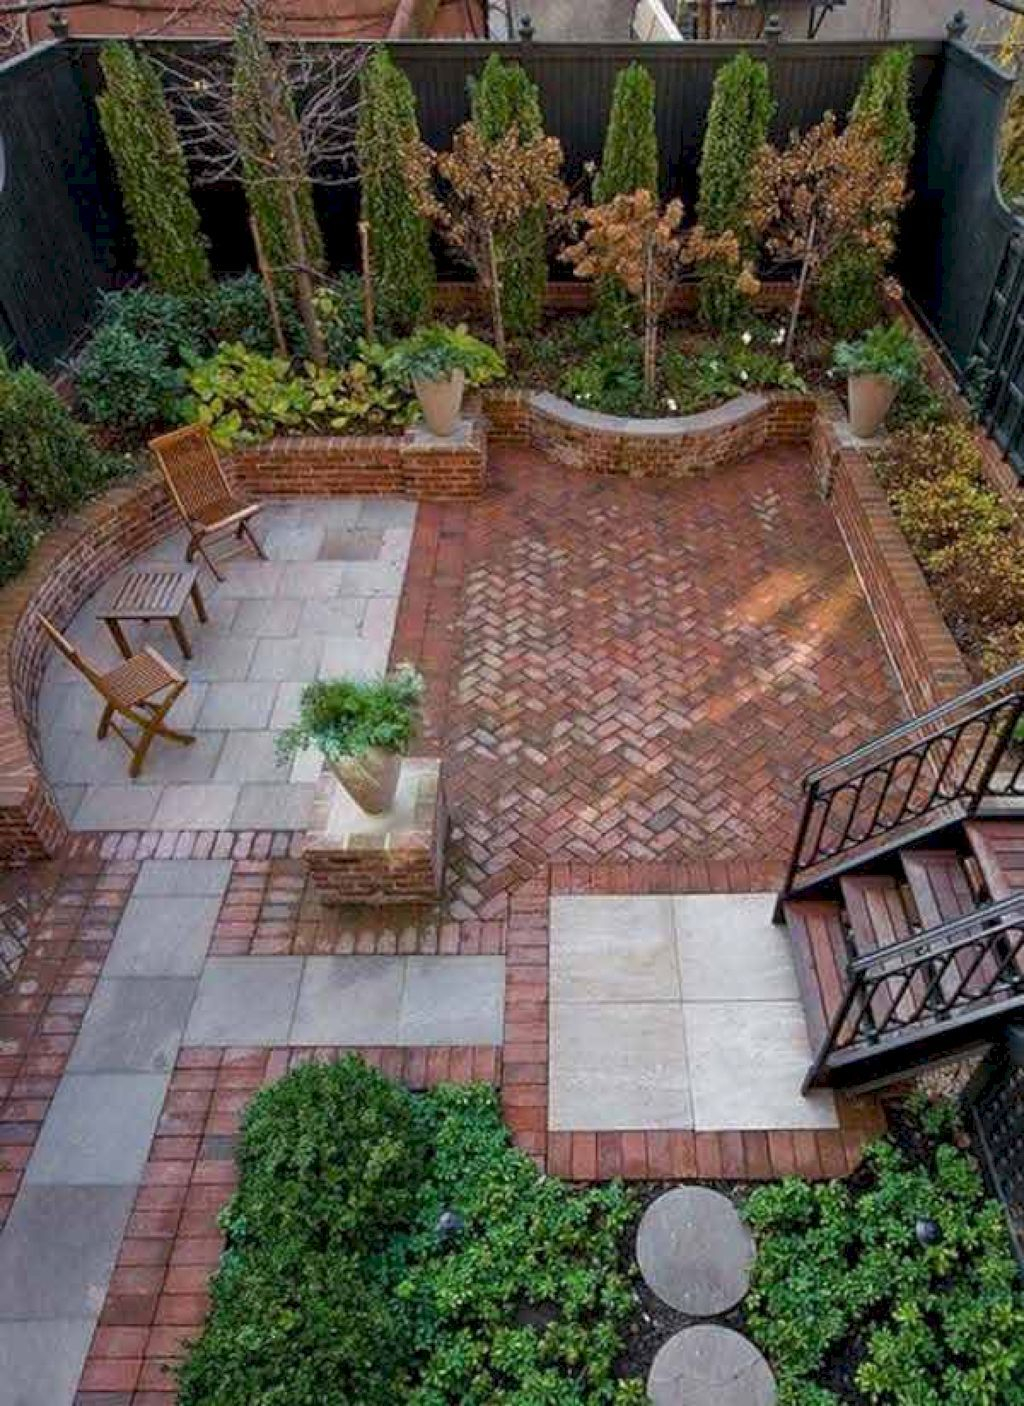 90 Fresh Small Backyard Remodel Ideas Backyard Oasis Pinterest regarding Backyard Remodel Ideas